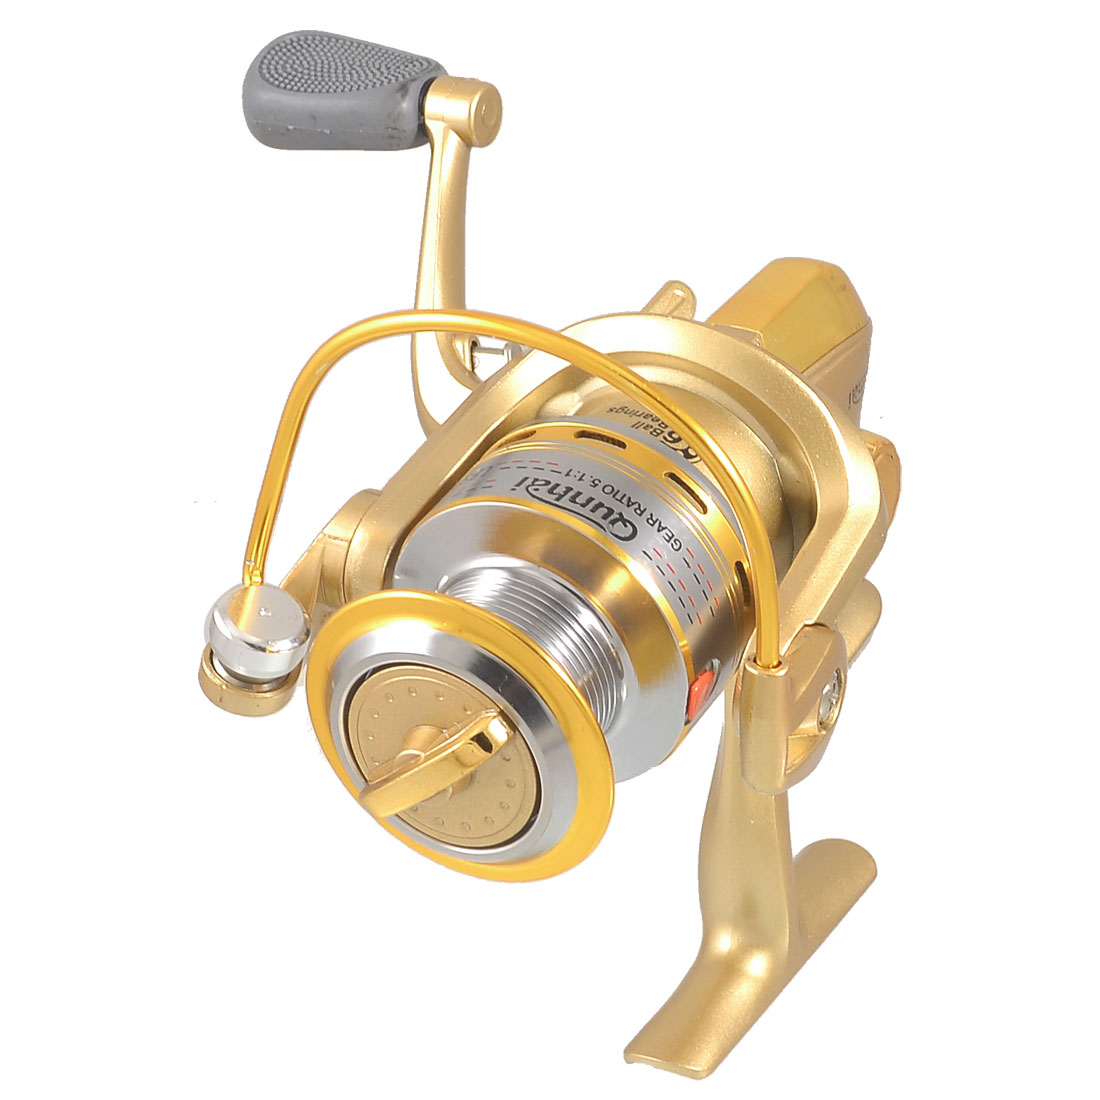 ST4000 5.1:1 Gear Ratio 6 Ball Bearings Fishing Spinning Reel Gold Tone